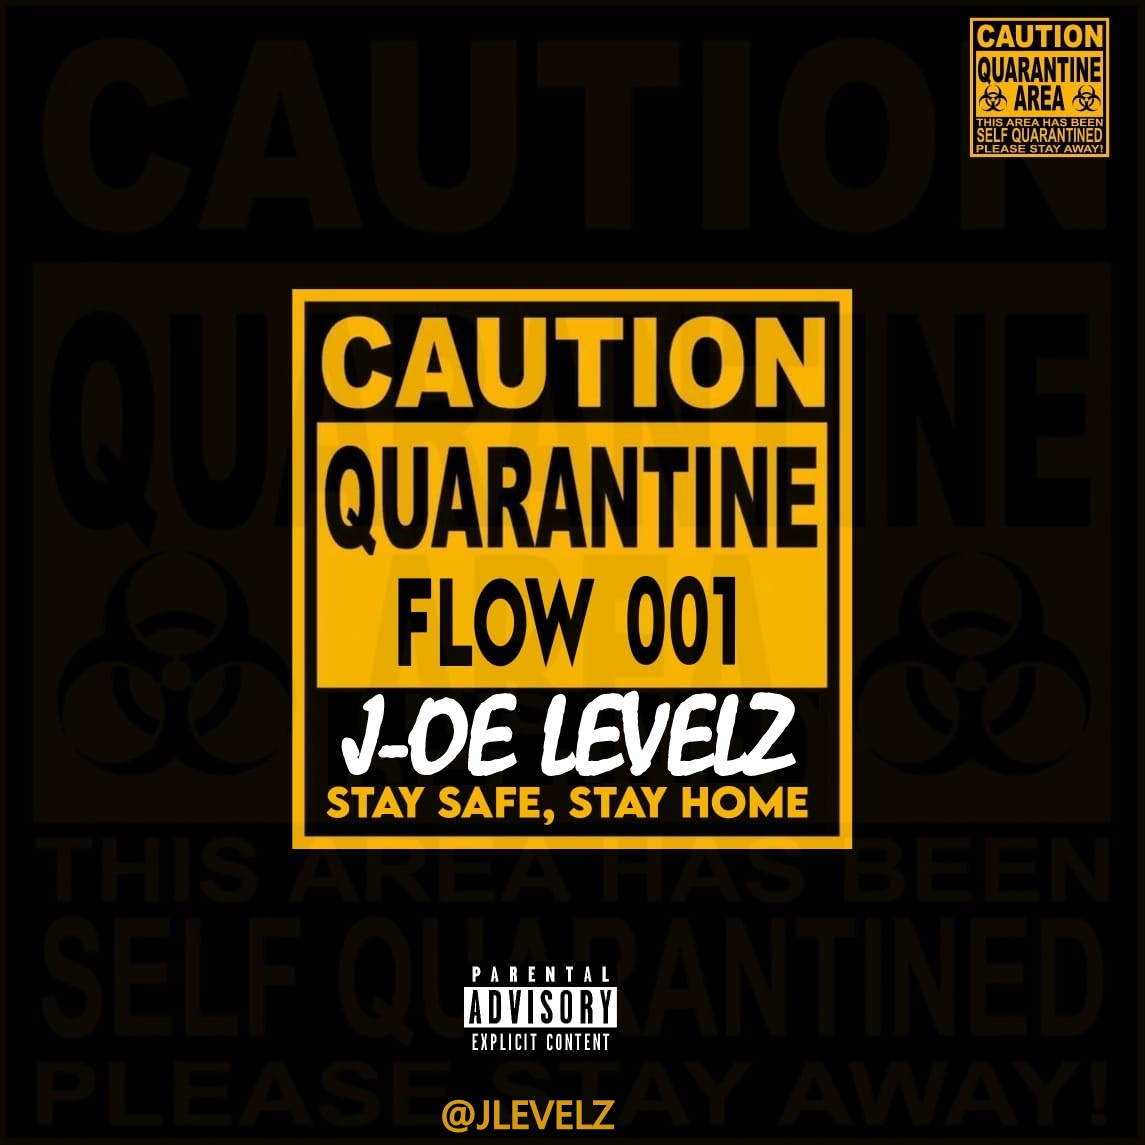 J-OE LEVELZ – Corona Virus (Mixed by FrankLegend)